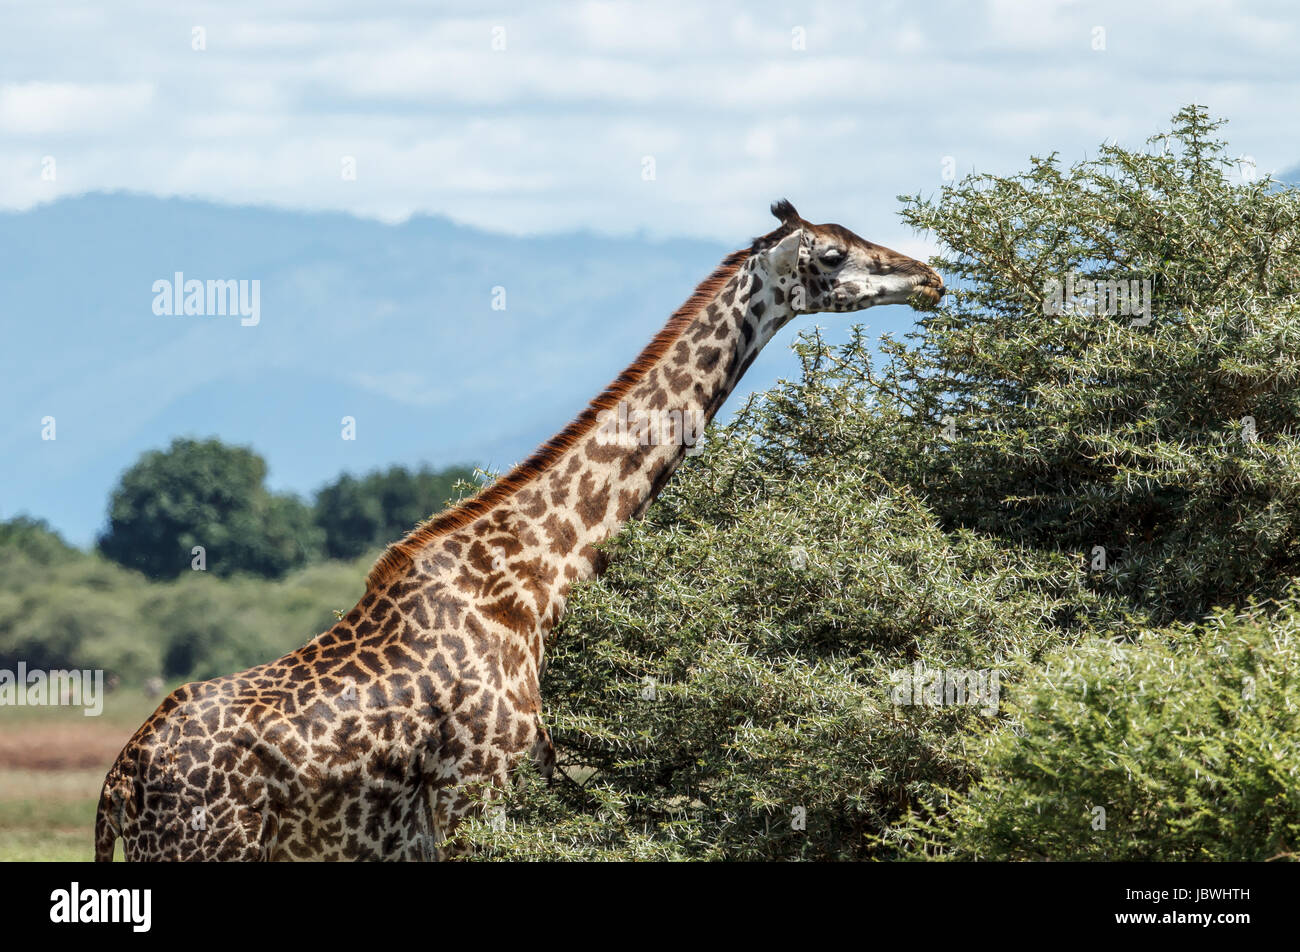 A Masai Giraffe feeds on the top of Acacia tree - Stock Image